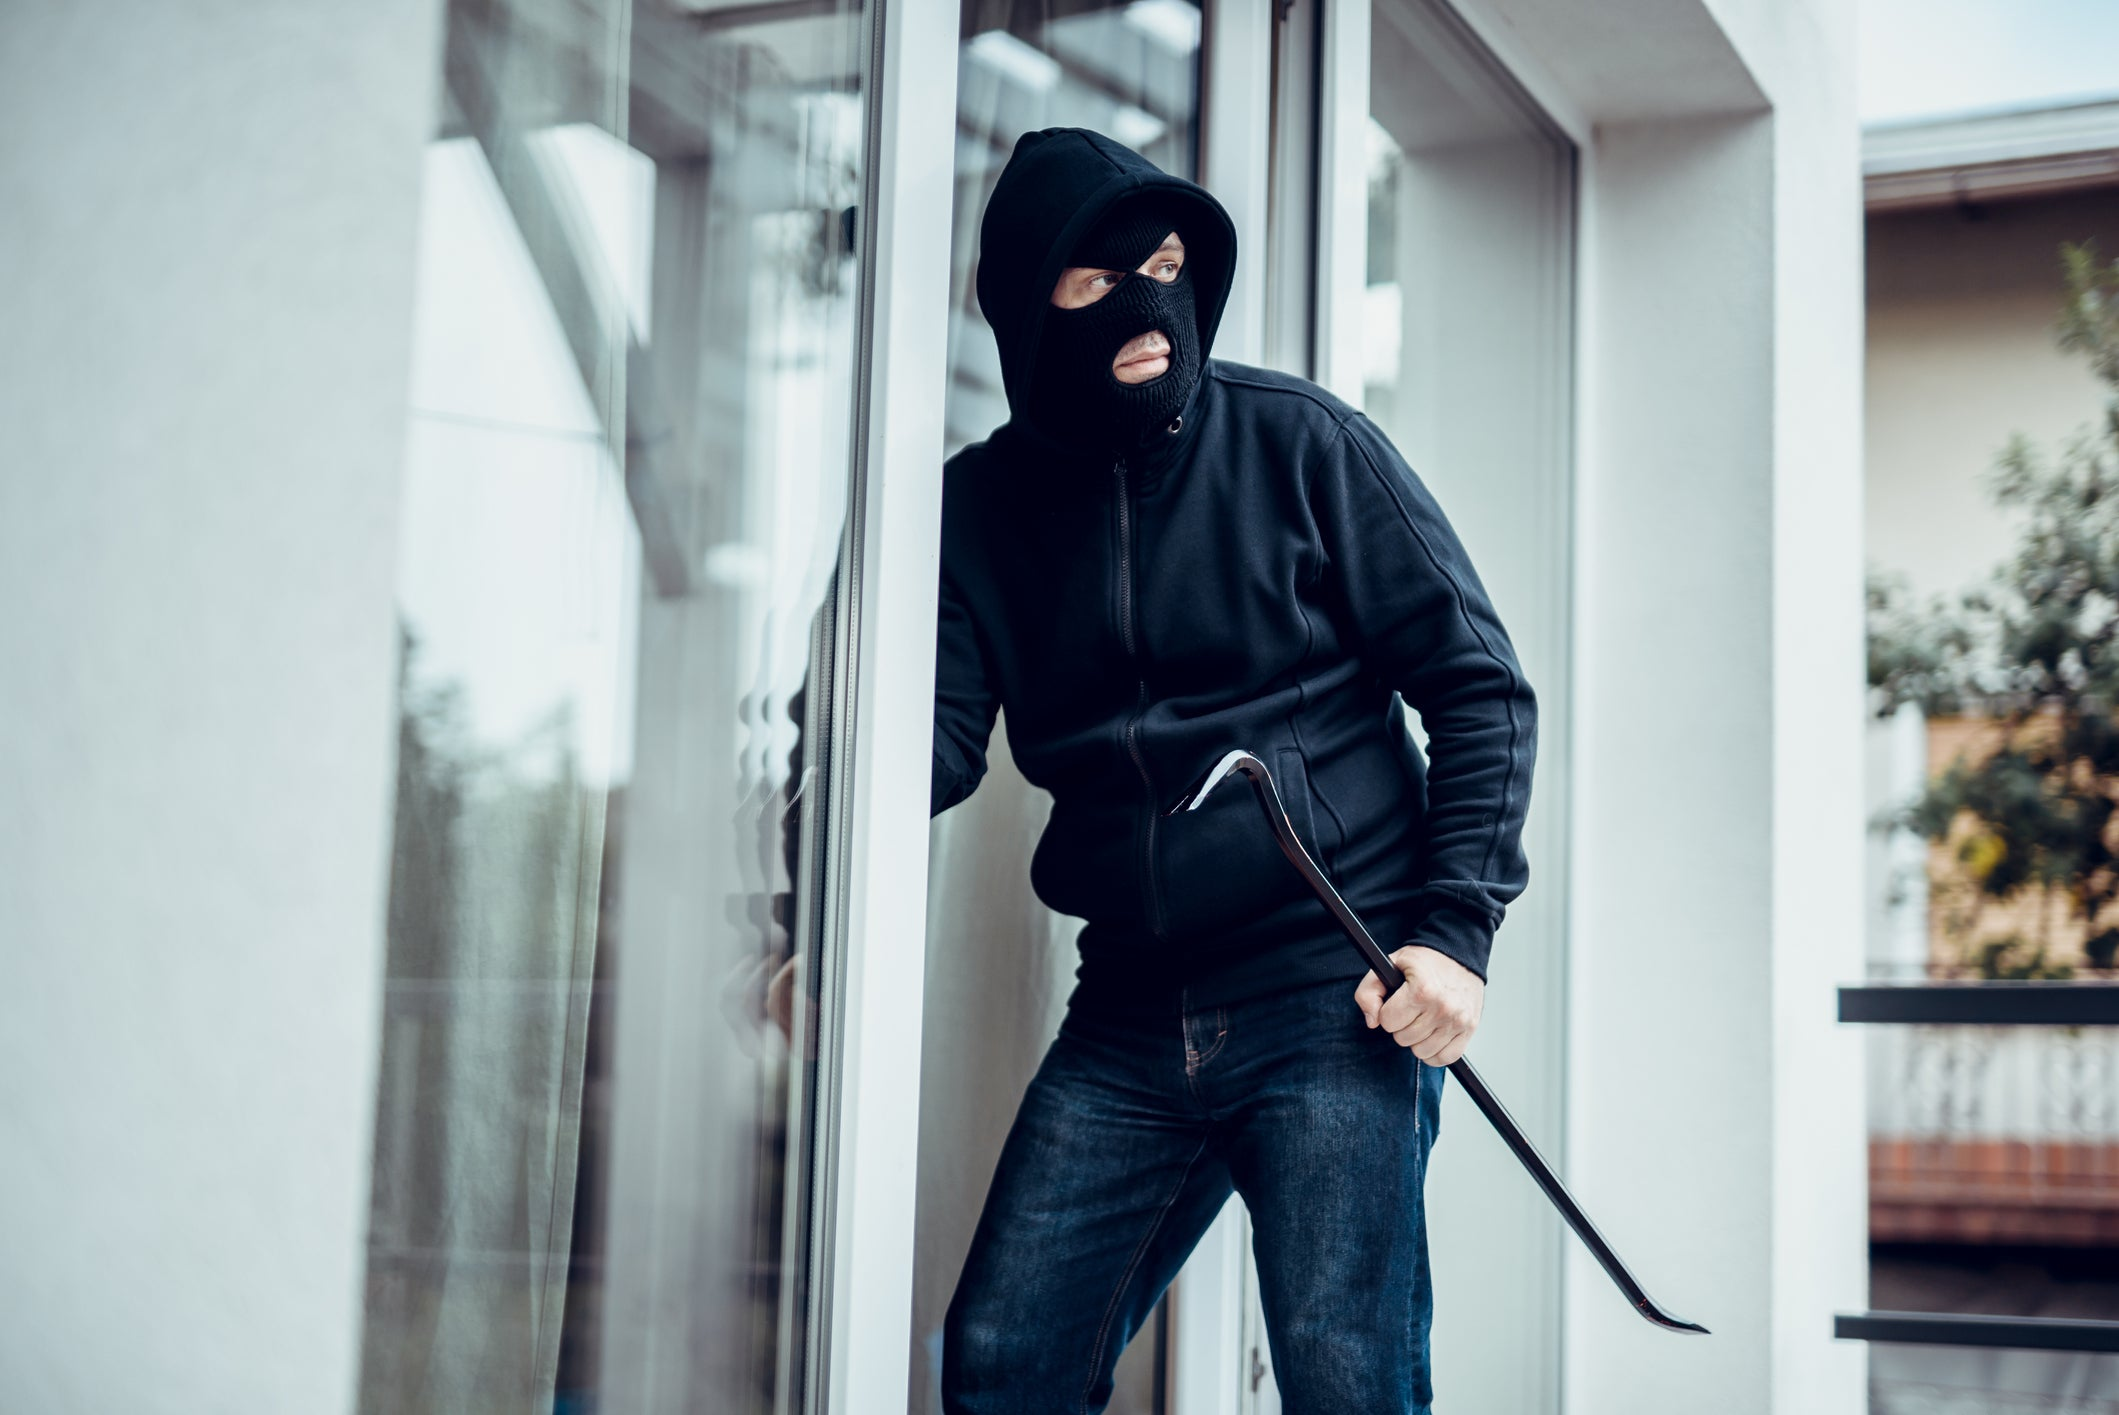 Burglary Statistics and Safety Guide for Families image